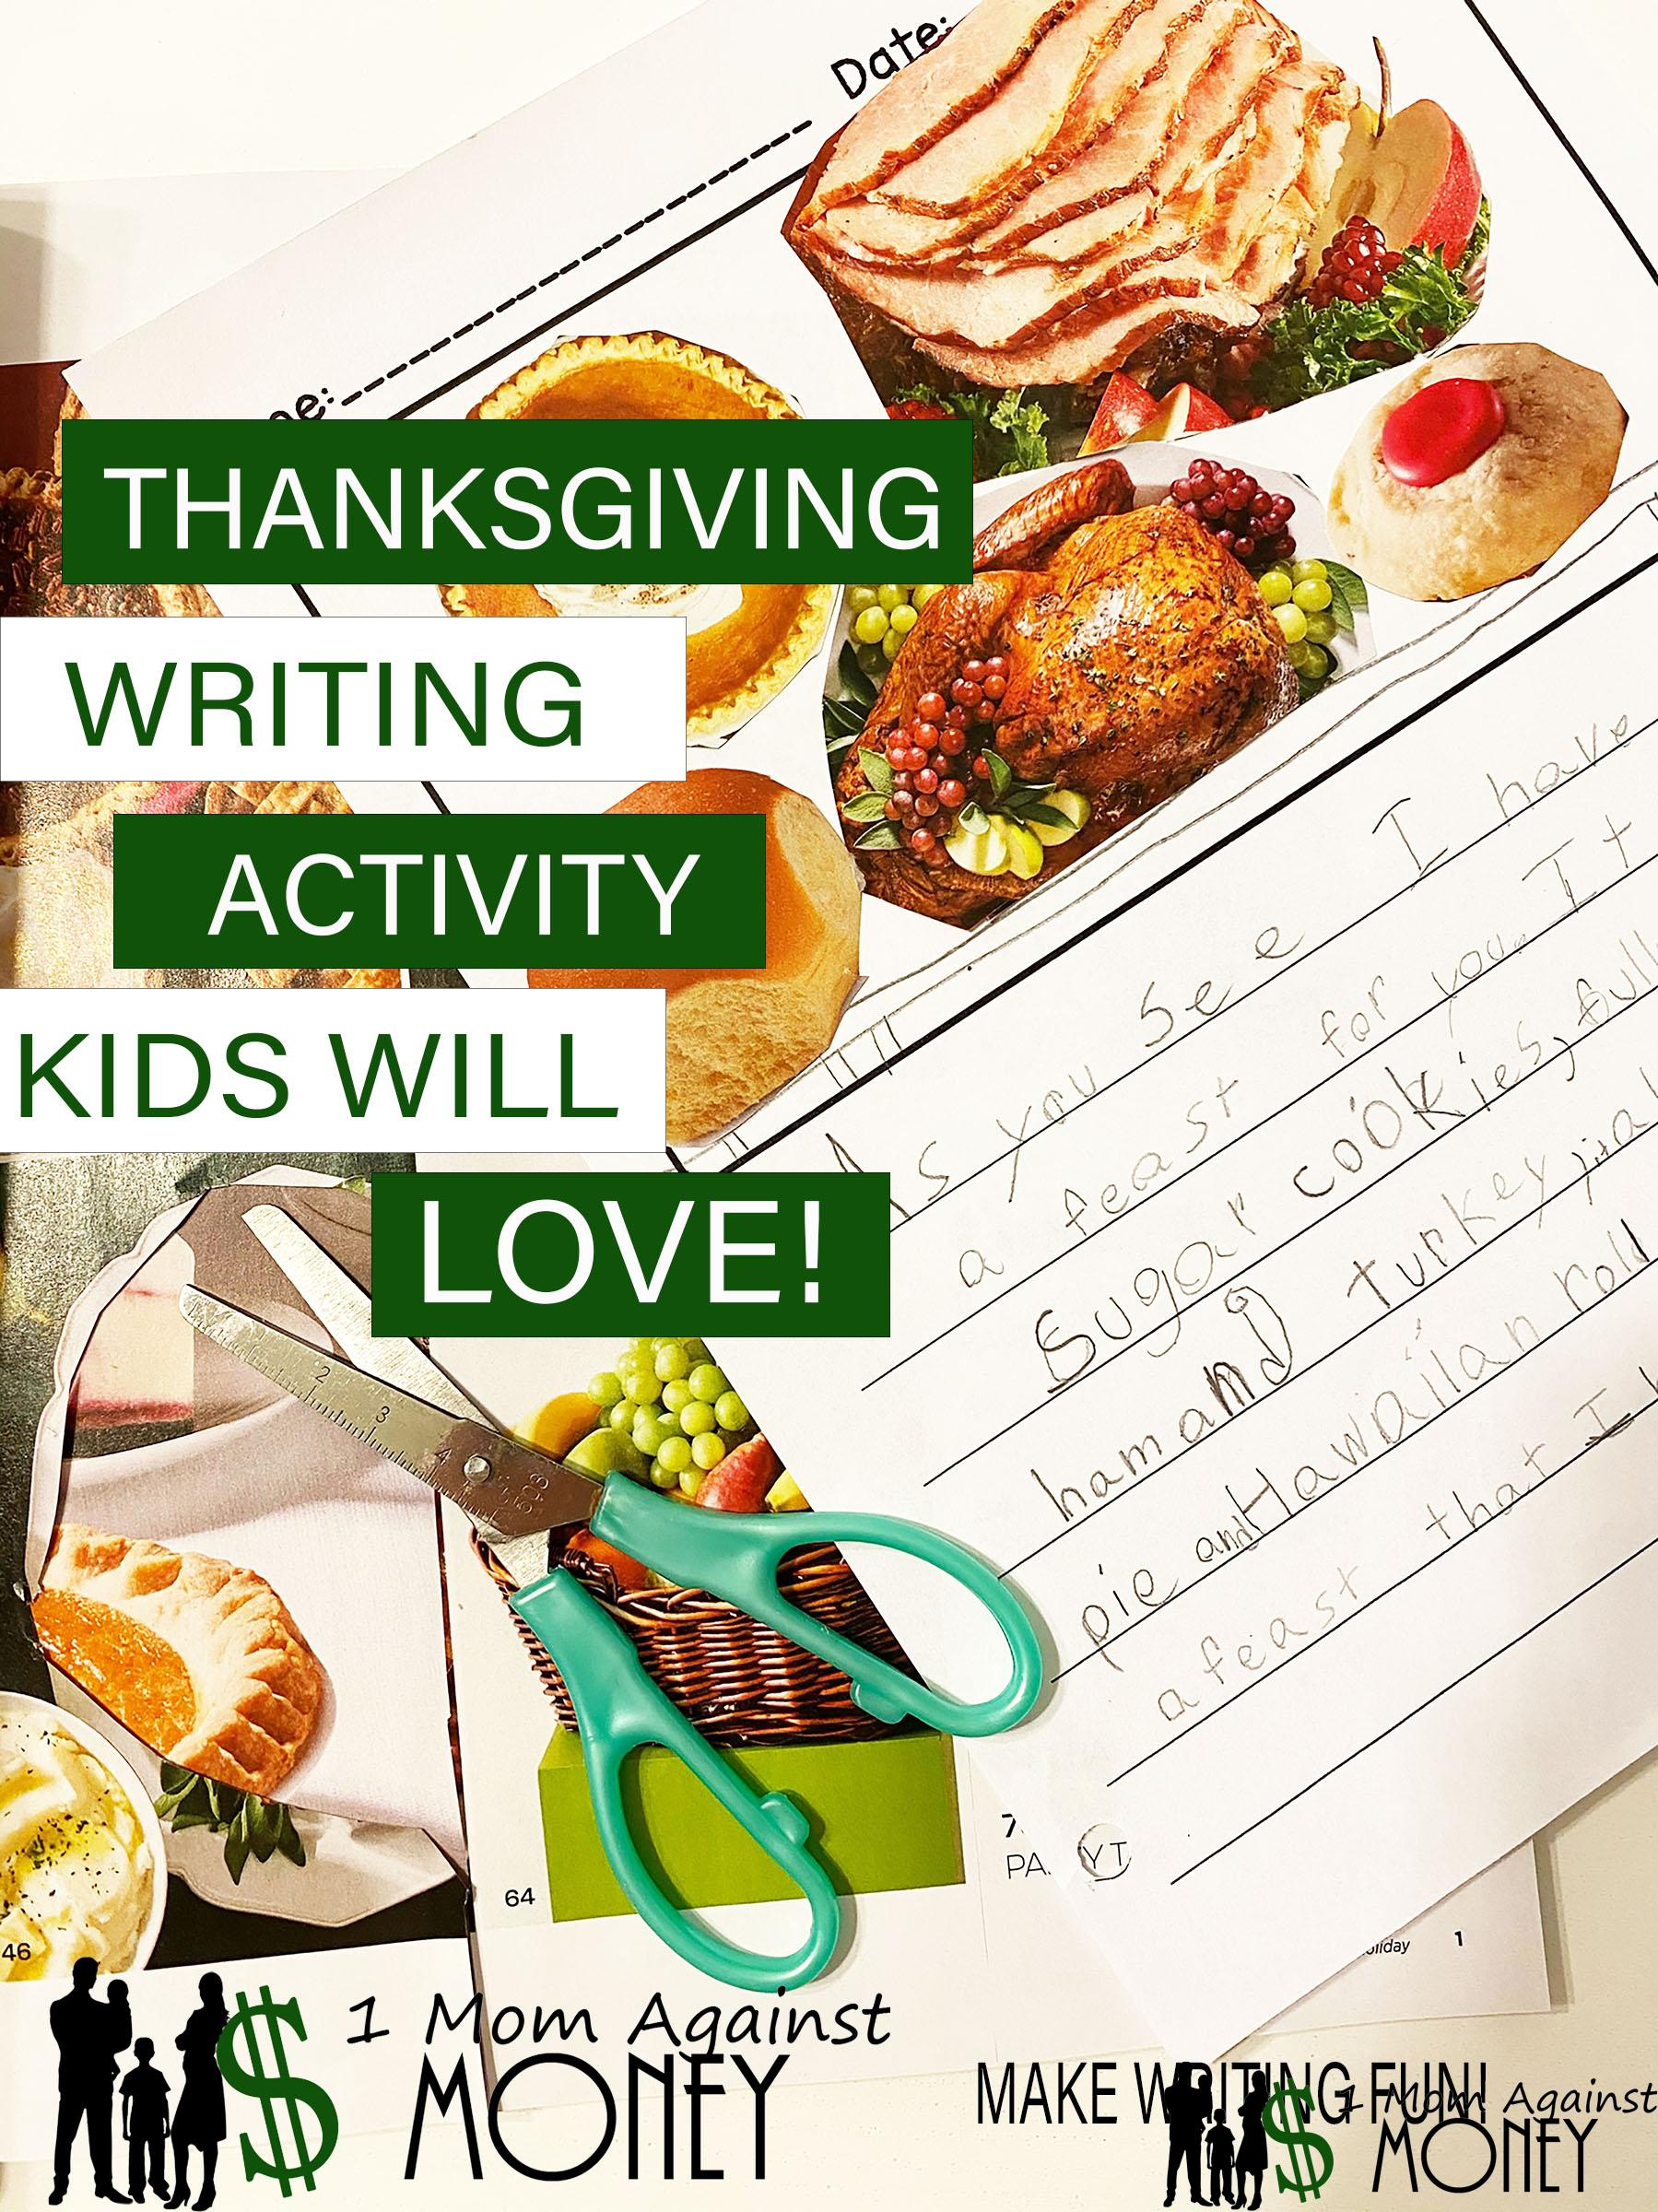 Thanksgiving Writing Prompt Kids Will Beg To Do Again!